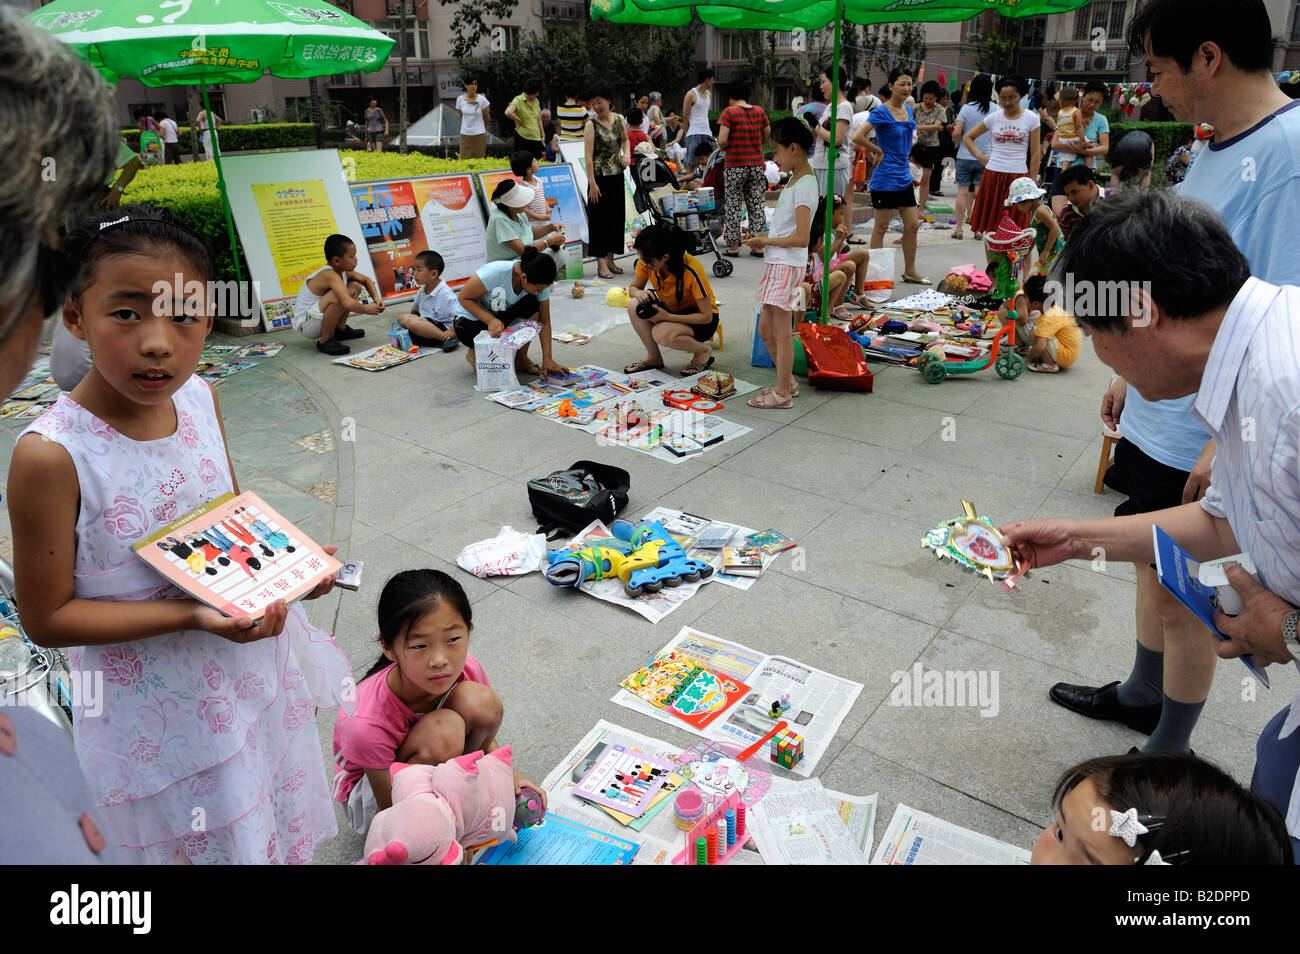 Flea market on Sunday in a community in Beijing, China. 26-Jul-2008 - Stock Image